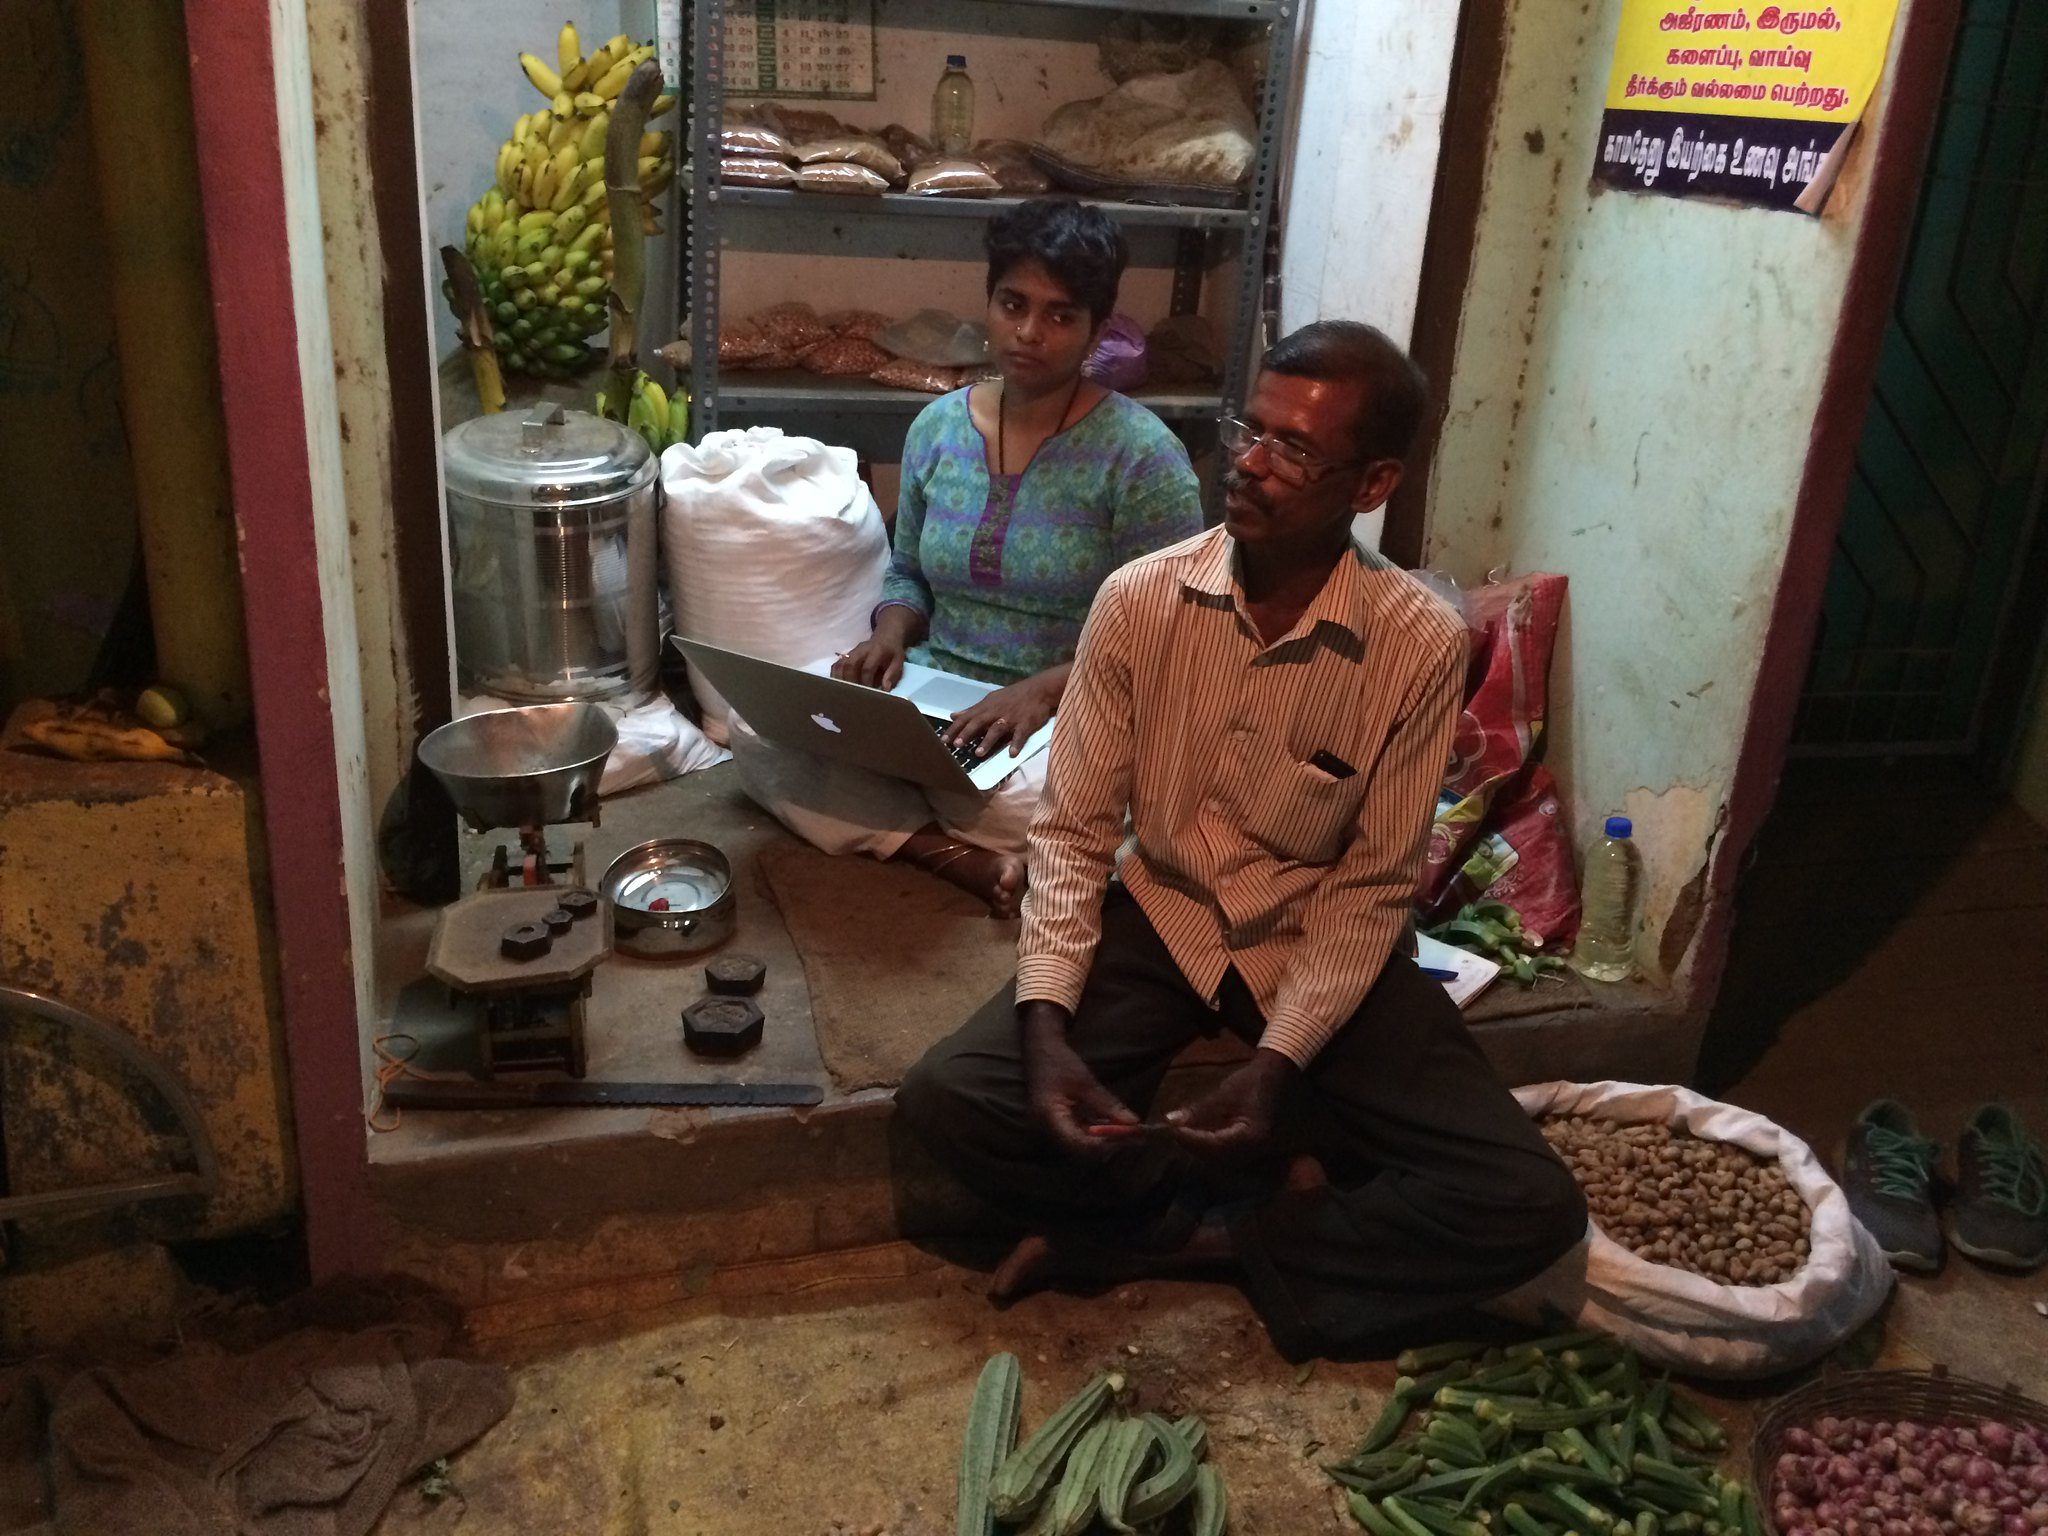 Field Work, interviewing a natural farmer in his shop, while he sells his non-chemical vegetable produce from his small outlet in Tanjavur